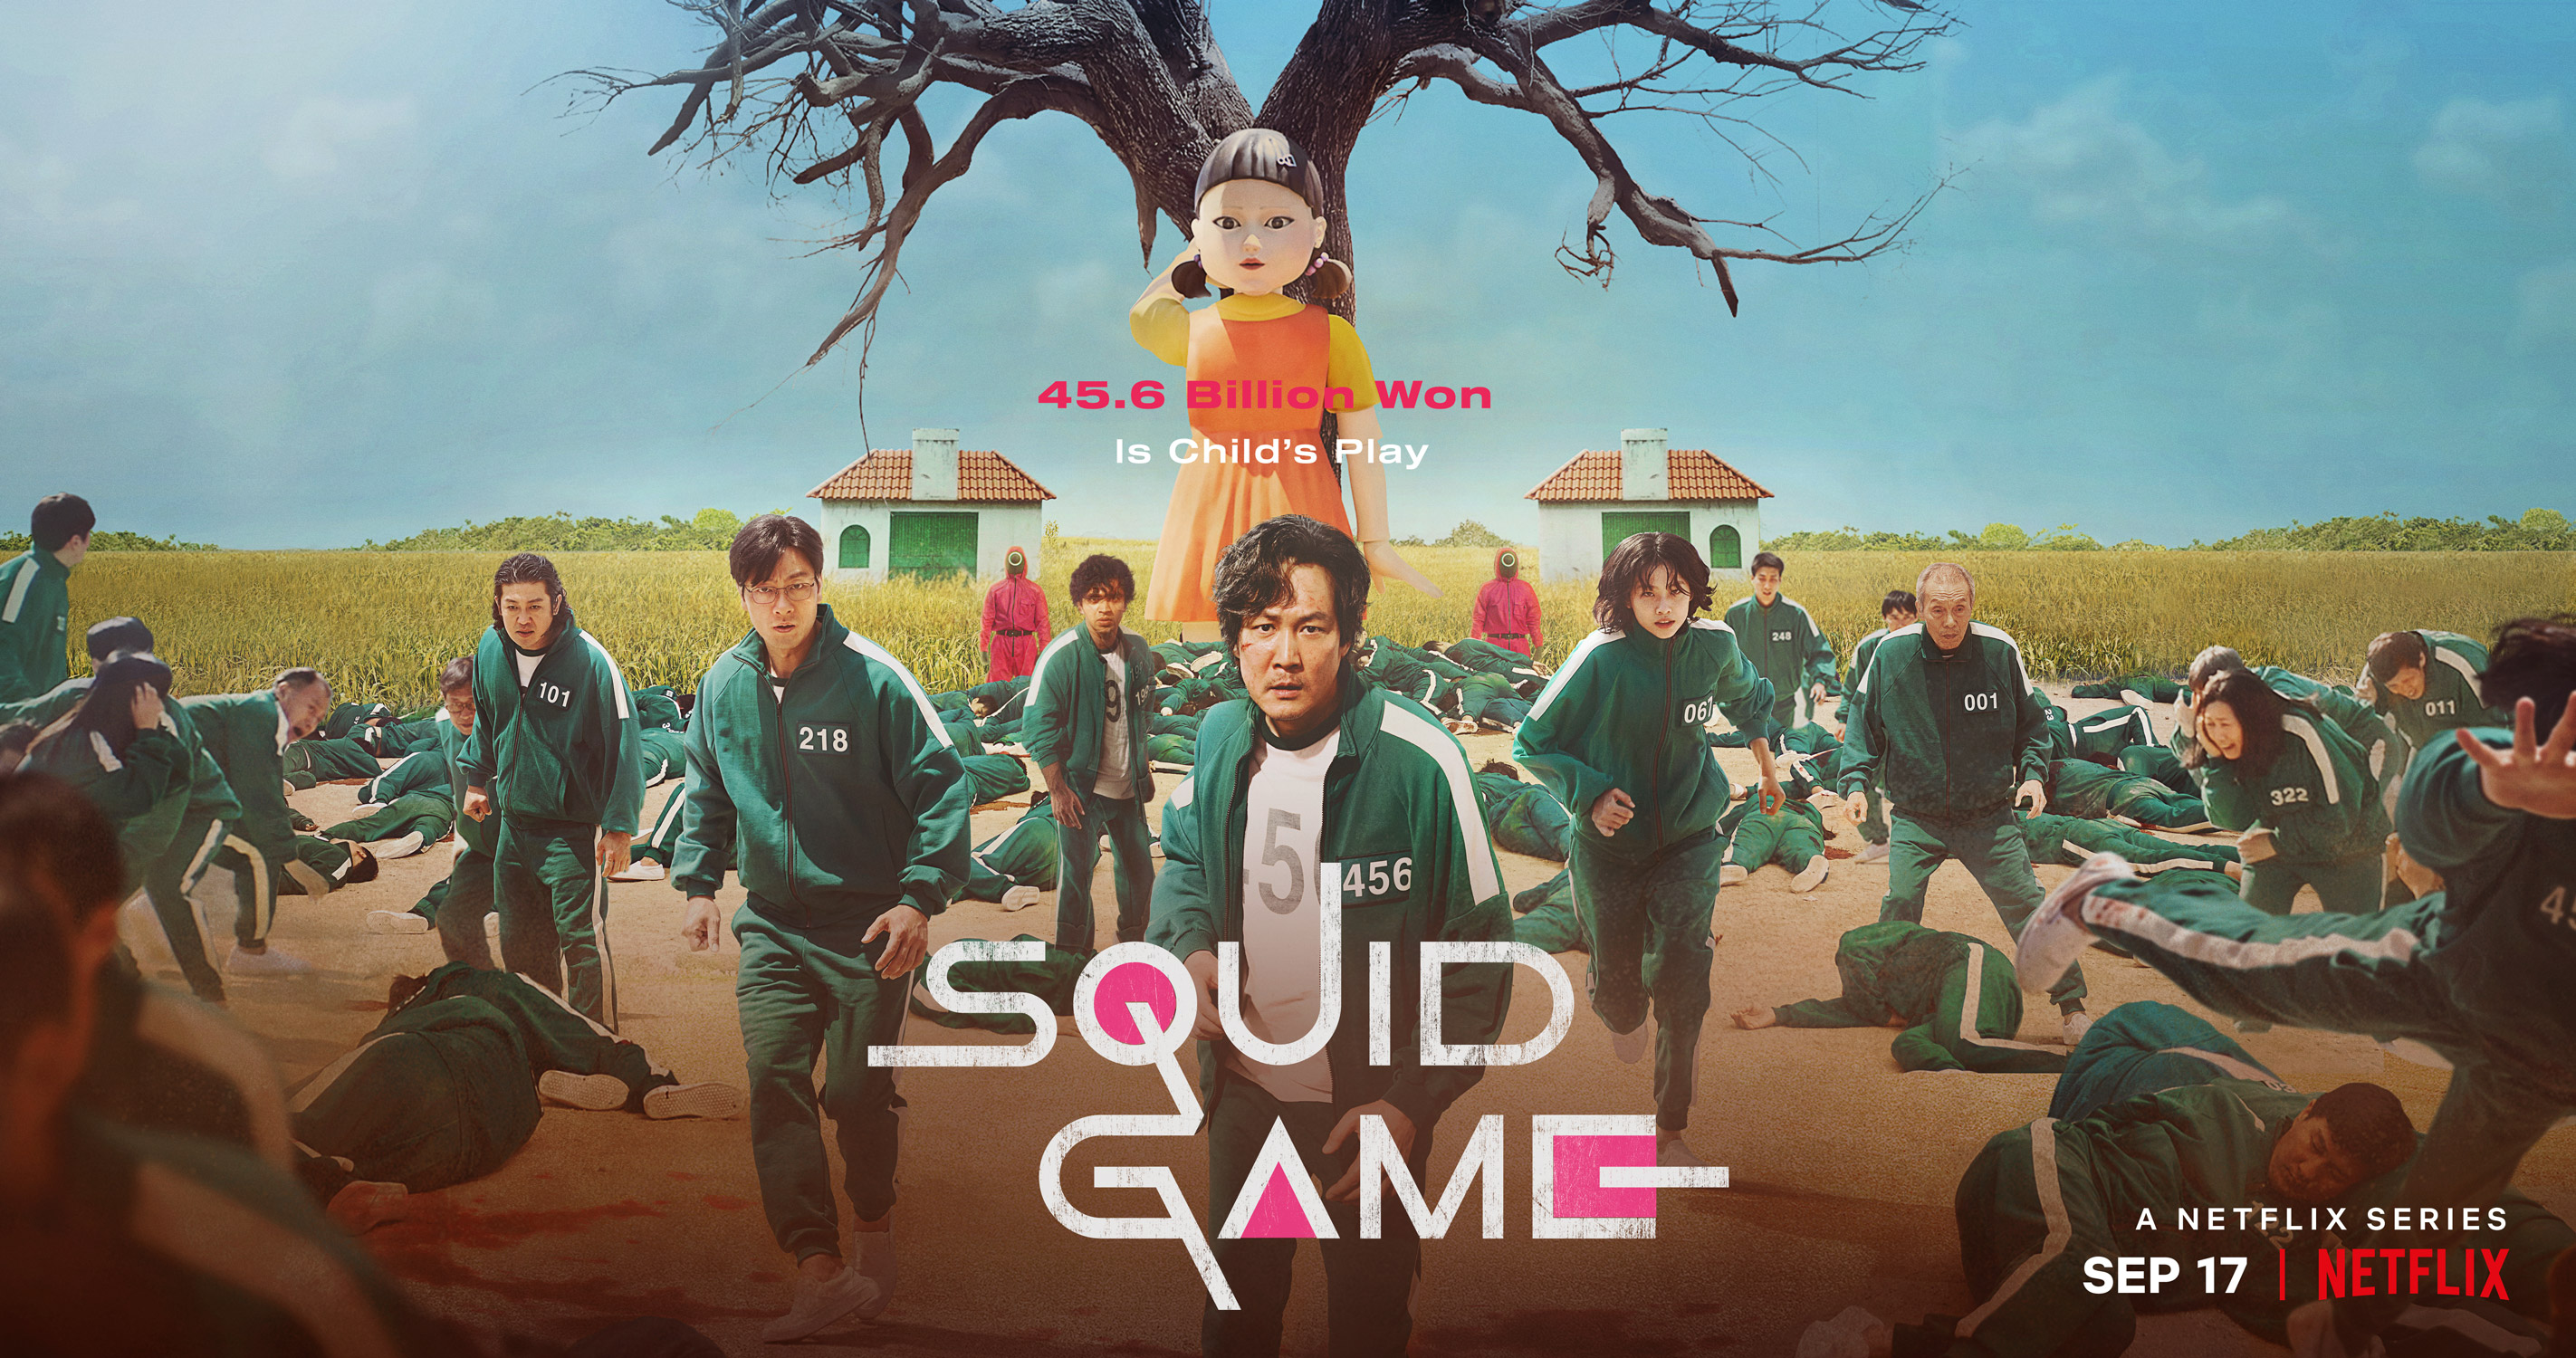 """About Netflix - """"Kill or Be Killed"""" Squid Game Main Trailer & Ensemble  Poster Released, Showing the Truth Behind the Deadly Games!"""